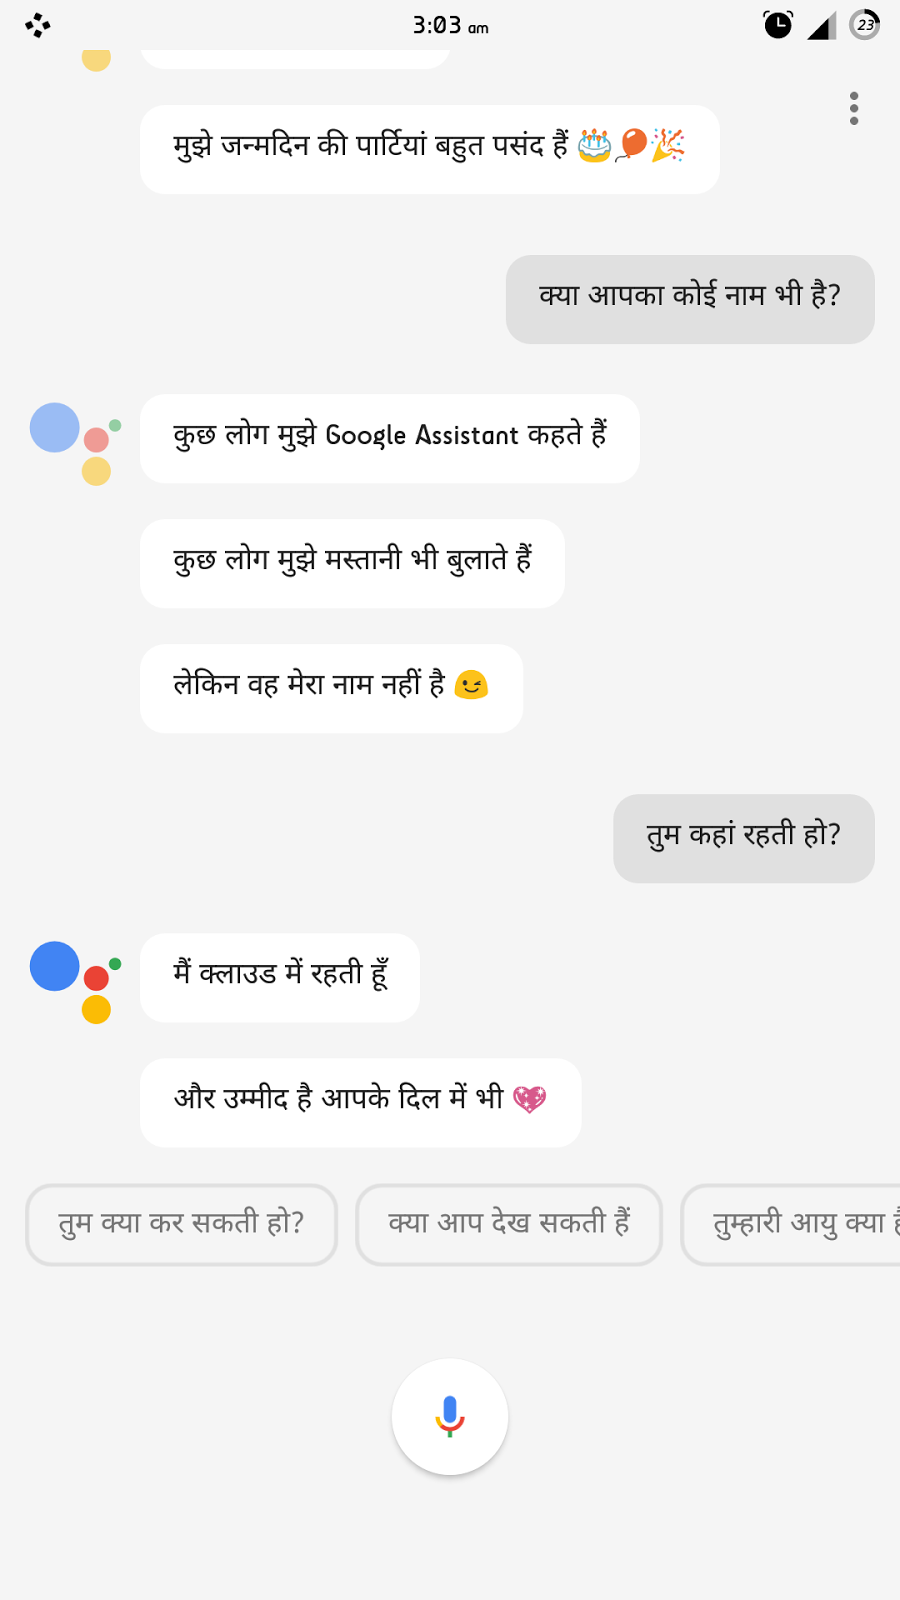 Image of: Fbi Funny Google Assistant Being Funny Change Your Phone Language To Hindi Use Google Assistant On Your Google Assistant Enabled Phone Sunny Aroras Blog Google Assistant Funny Hindi Conversations